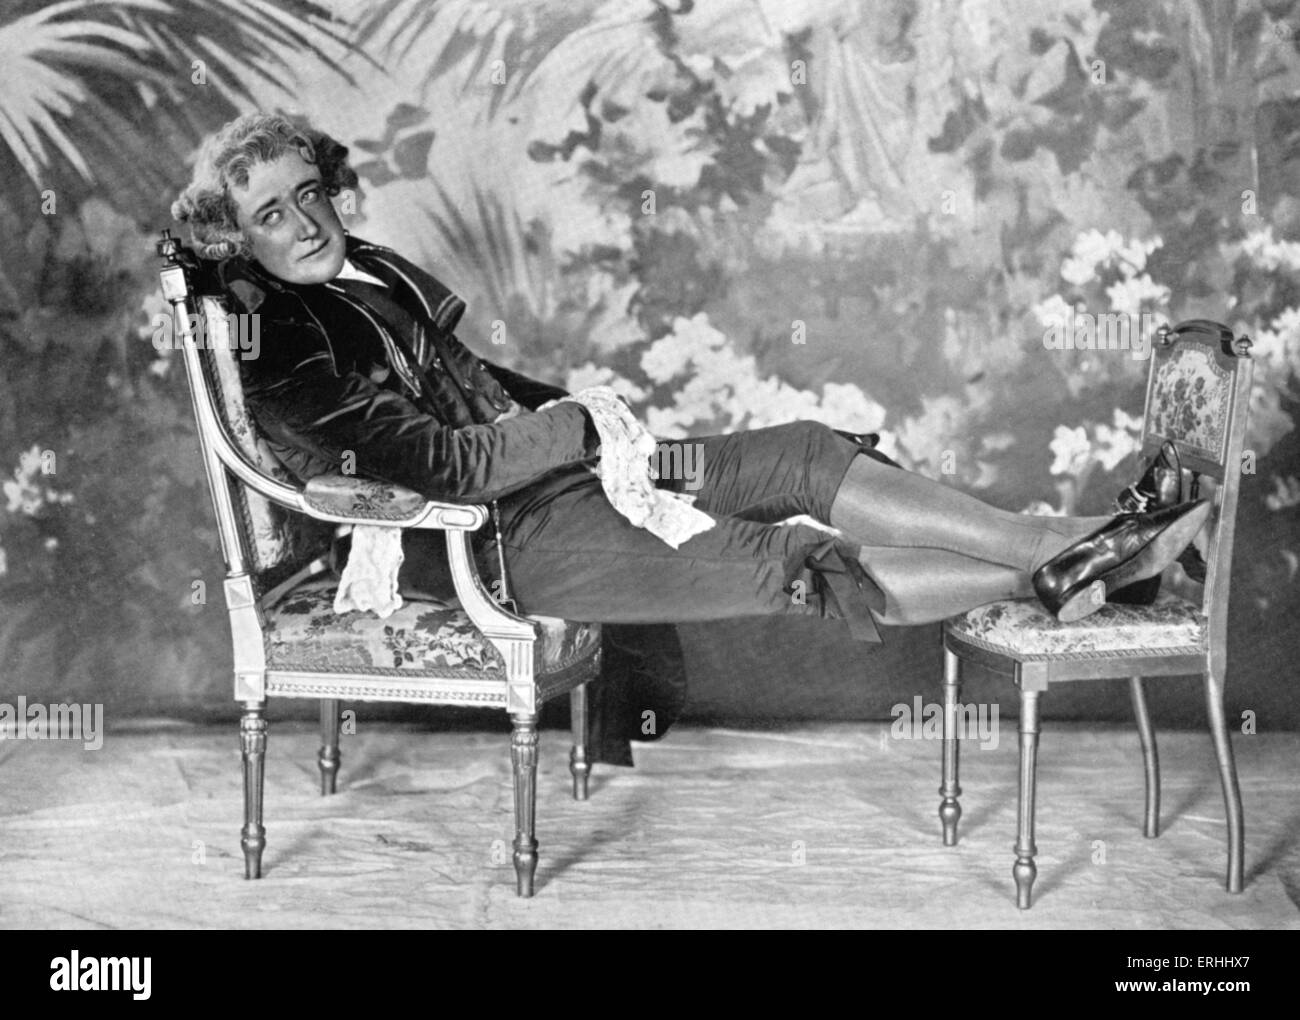 Baroness Emmuska Orczy and Montagu Barstow 's play 'The Scarlet Pimpernel' - Fred Terry as Sir Percy - Stock Image